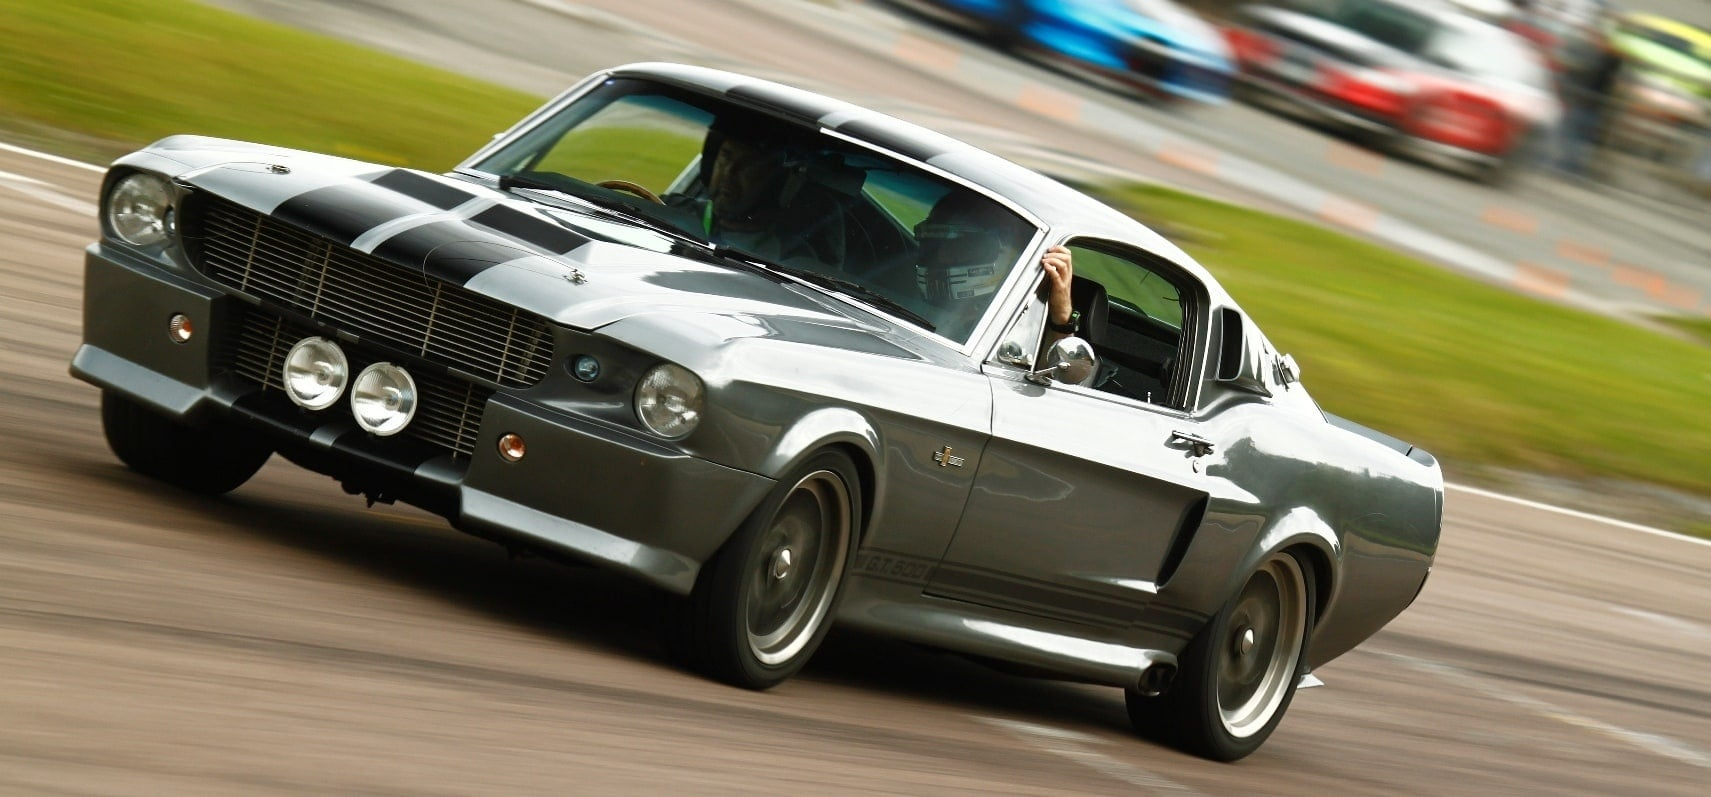 Shelby Mustang GT500 Driving Experience-1